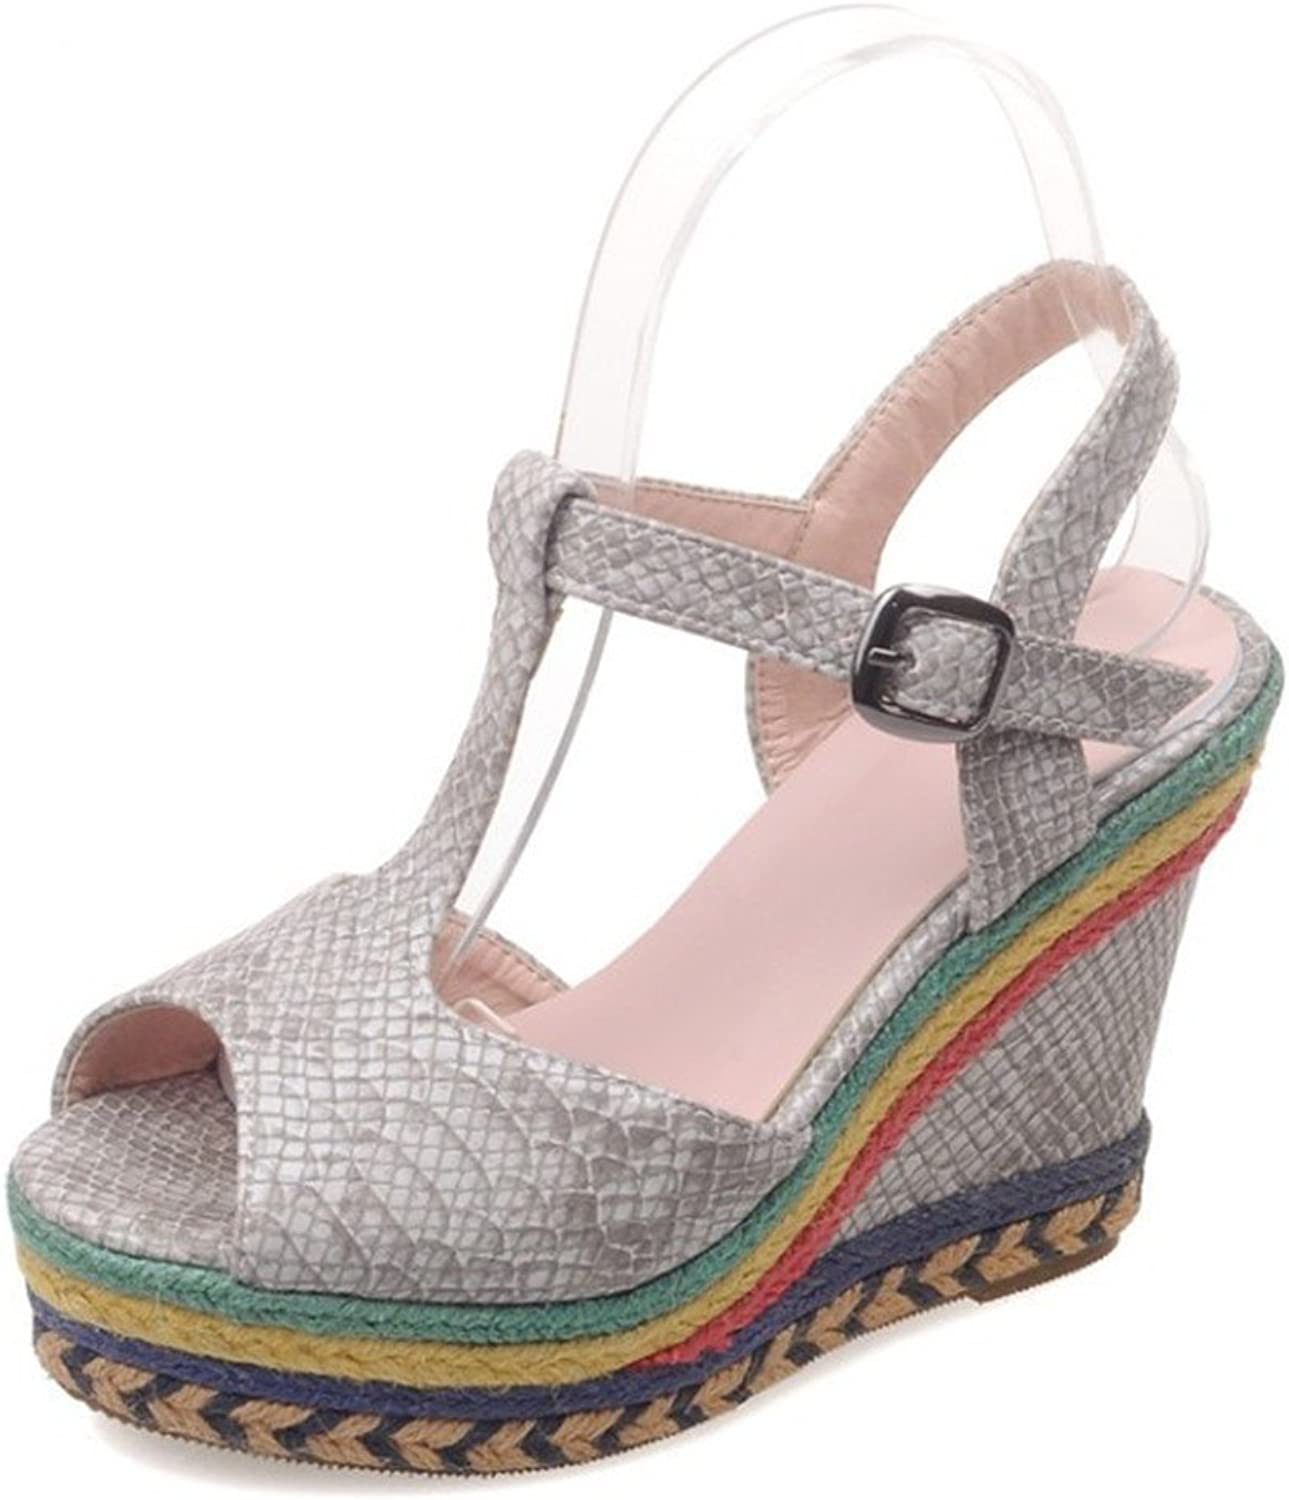 High Heeled shoes, Fashionable Coloured Slopes, Big Mouth Sandals with Fish Mouth Buckles.